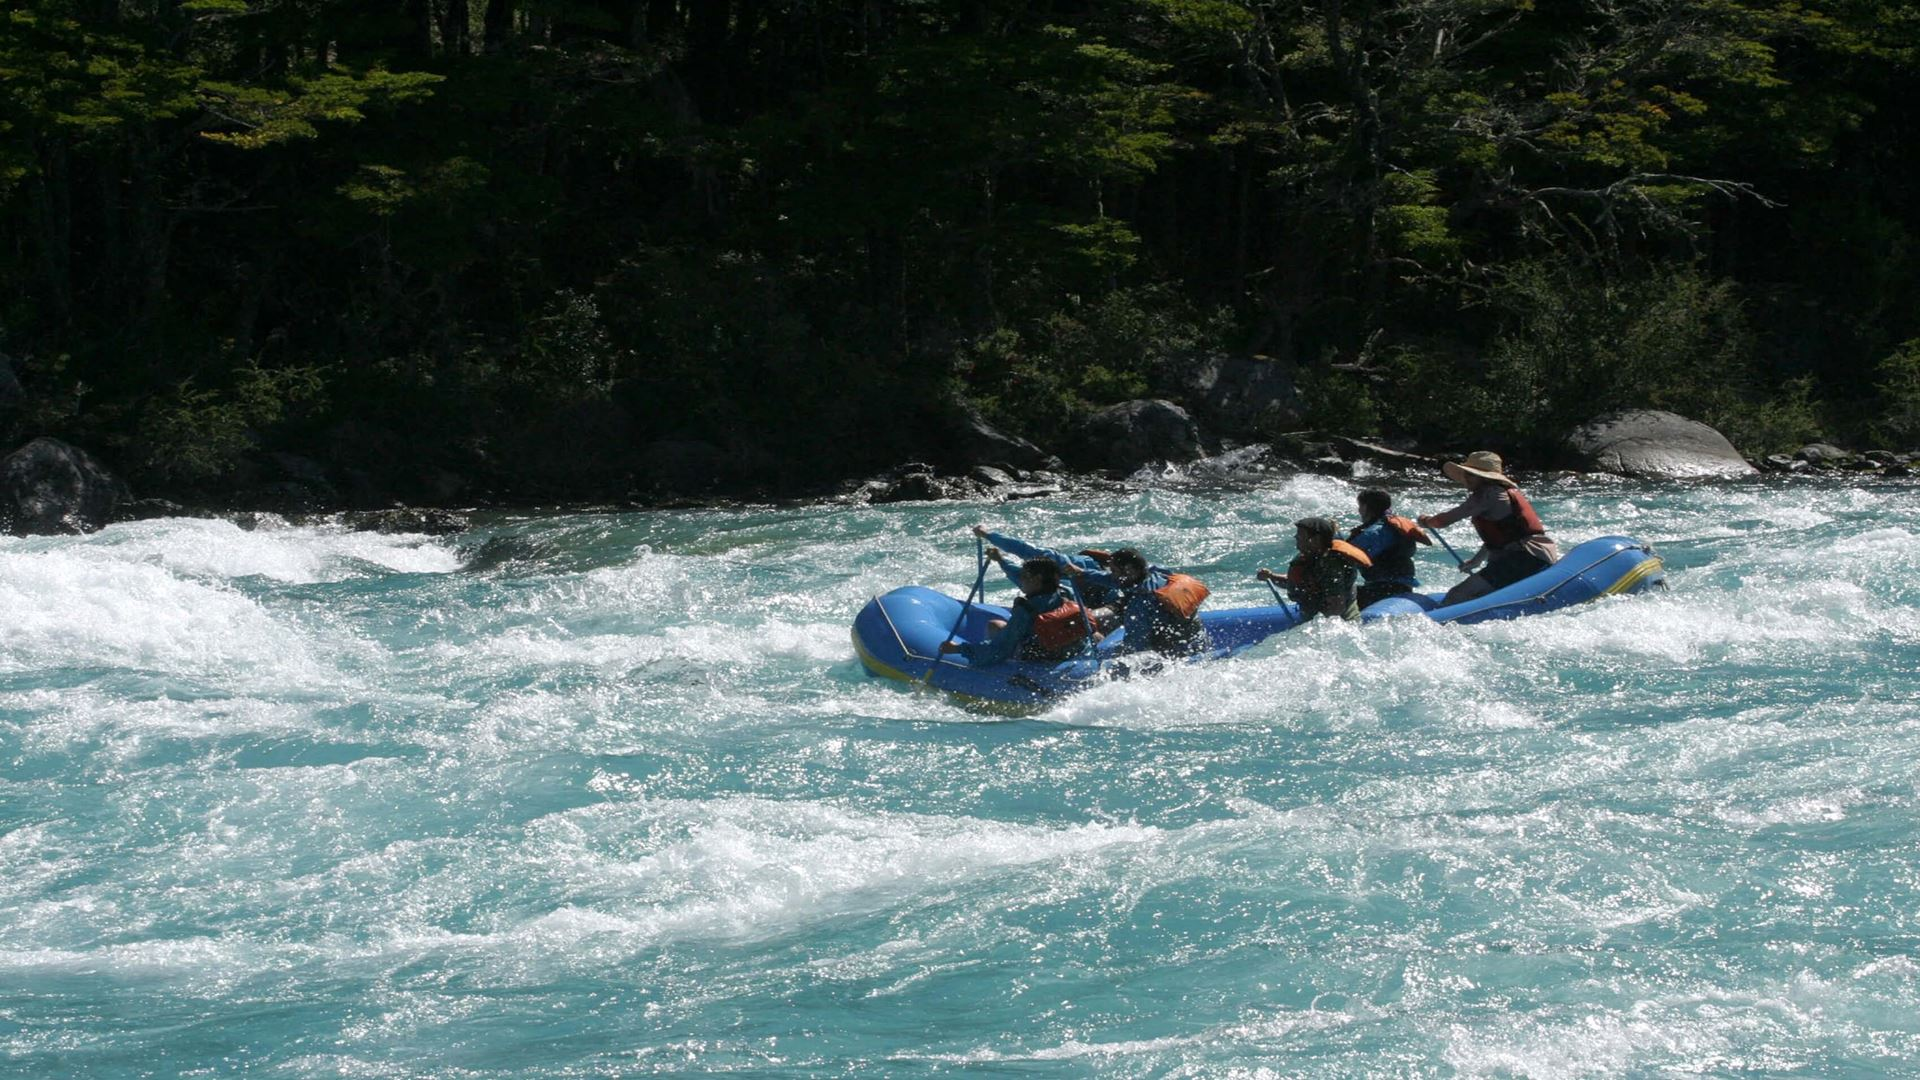 RAFTING ON THE BAKER RIVER